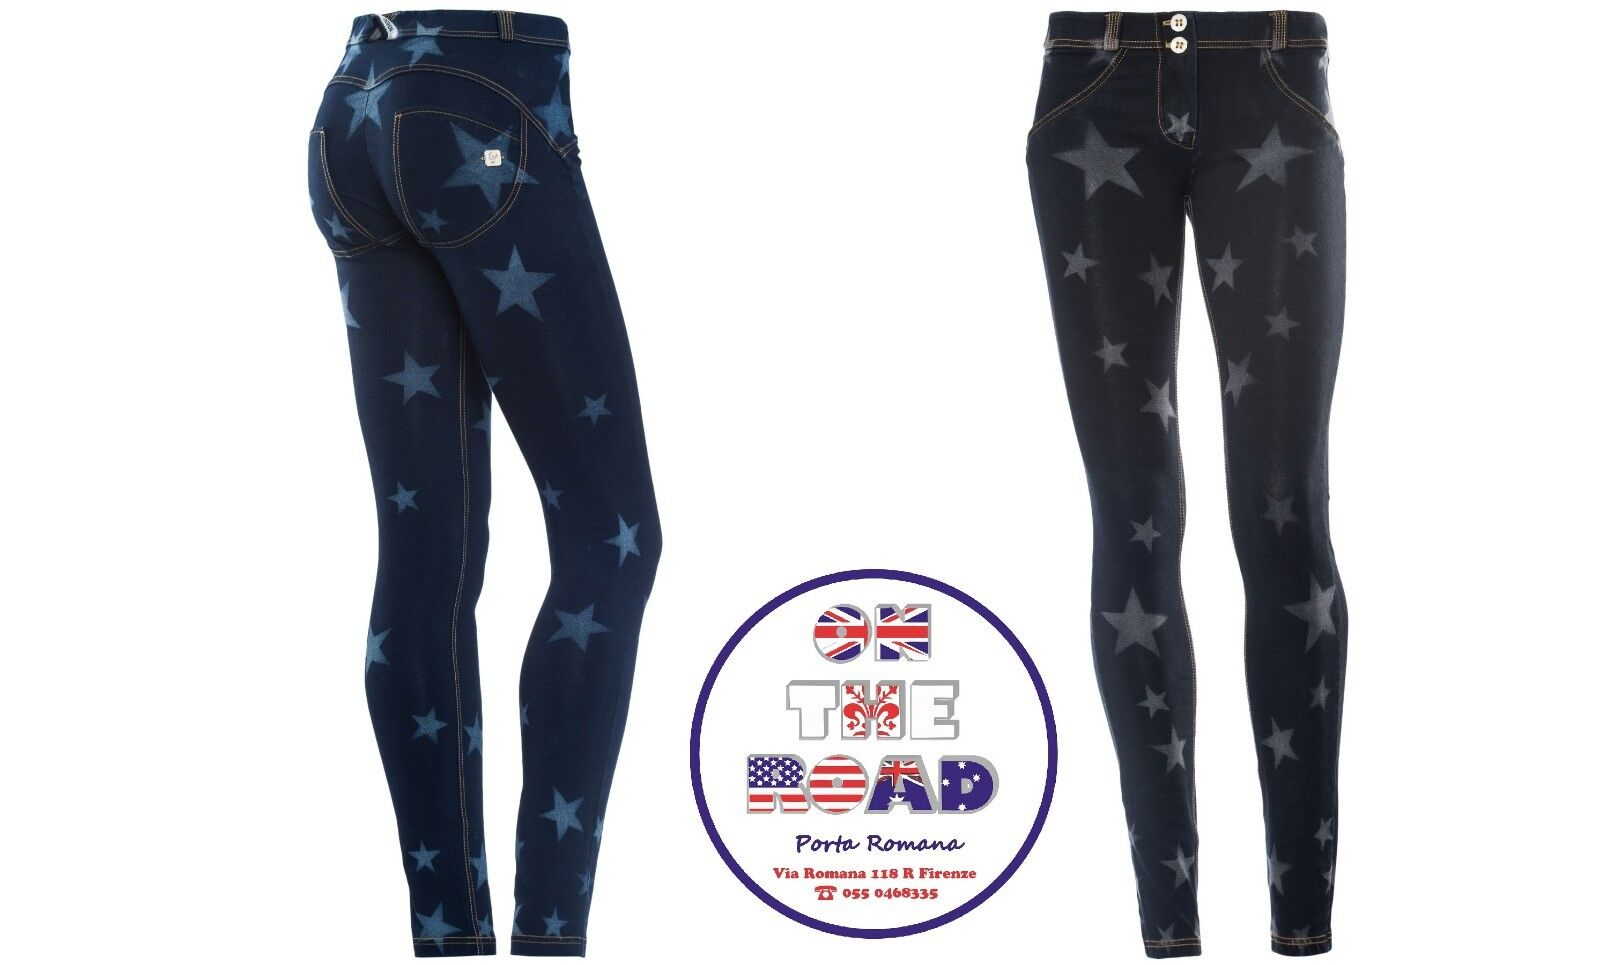 SCONTO 30% FREDDY WR.UP XS S M L PANTALONE PUSHUP WRUP1RFL6E STELLE VITA REGULAR